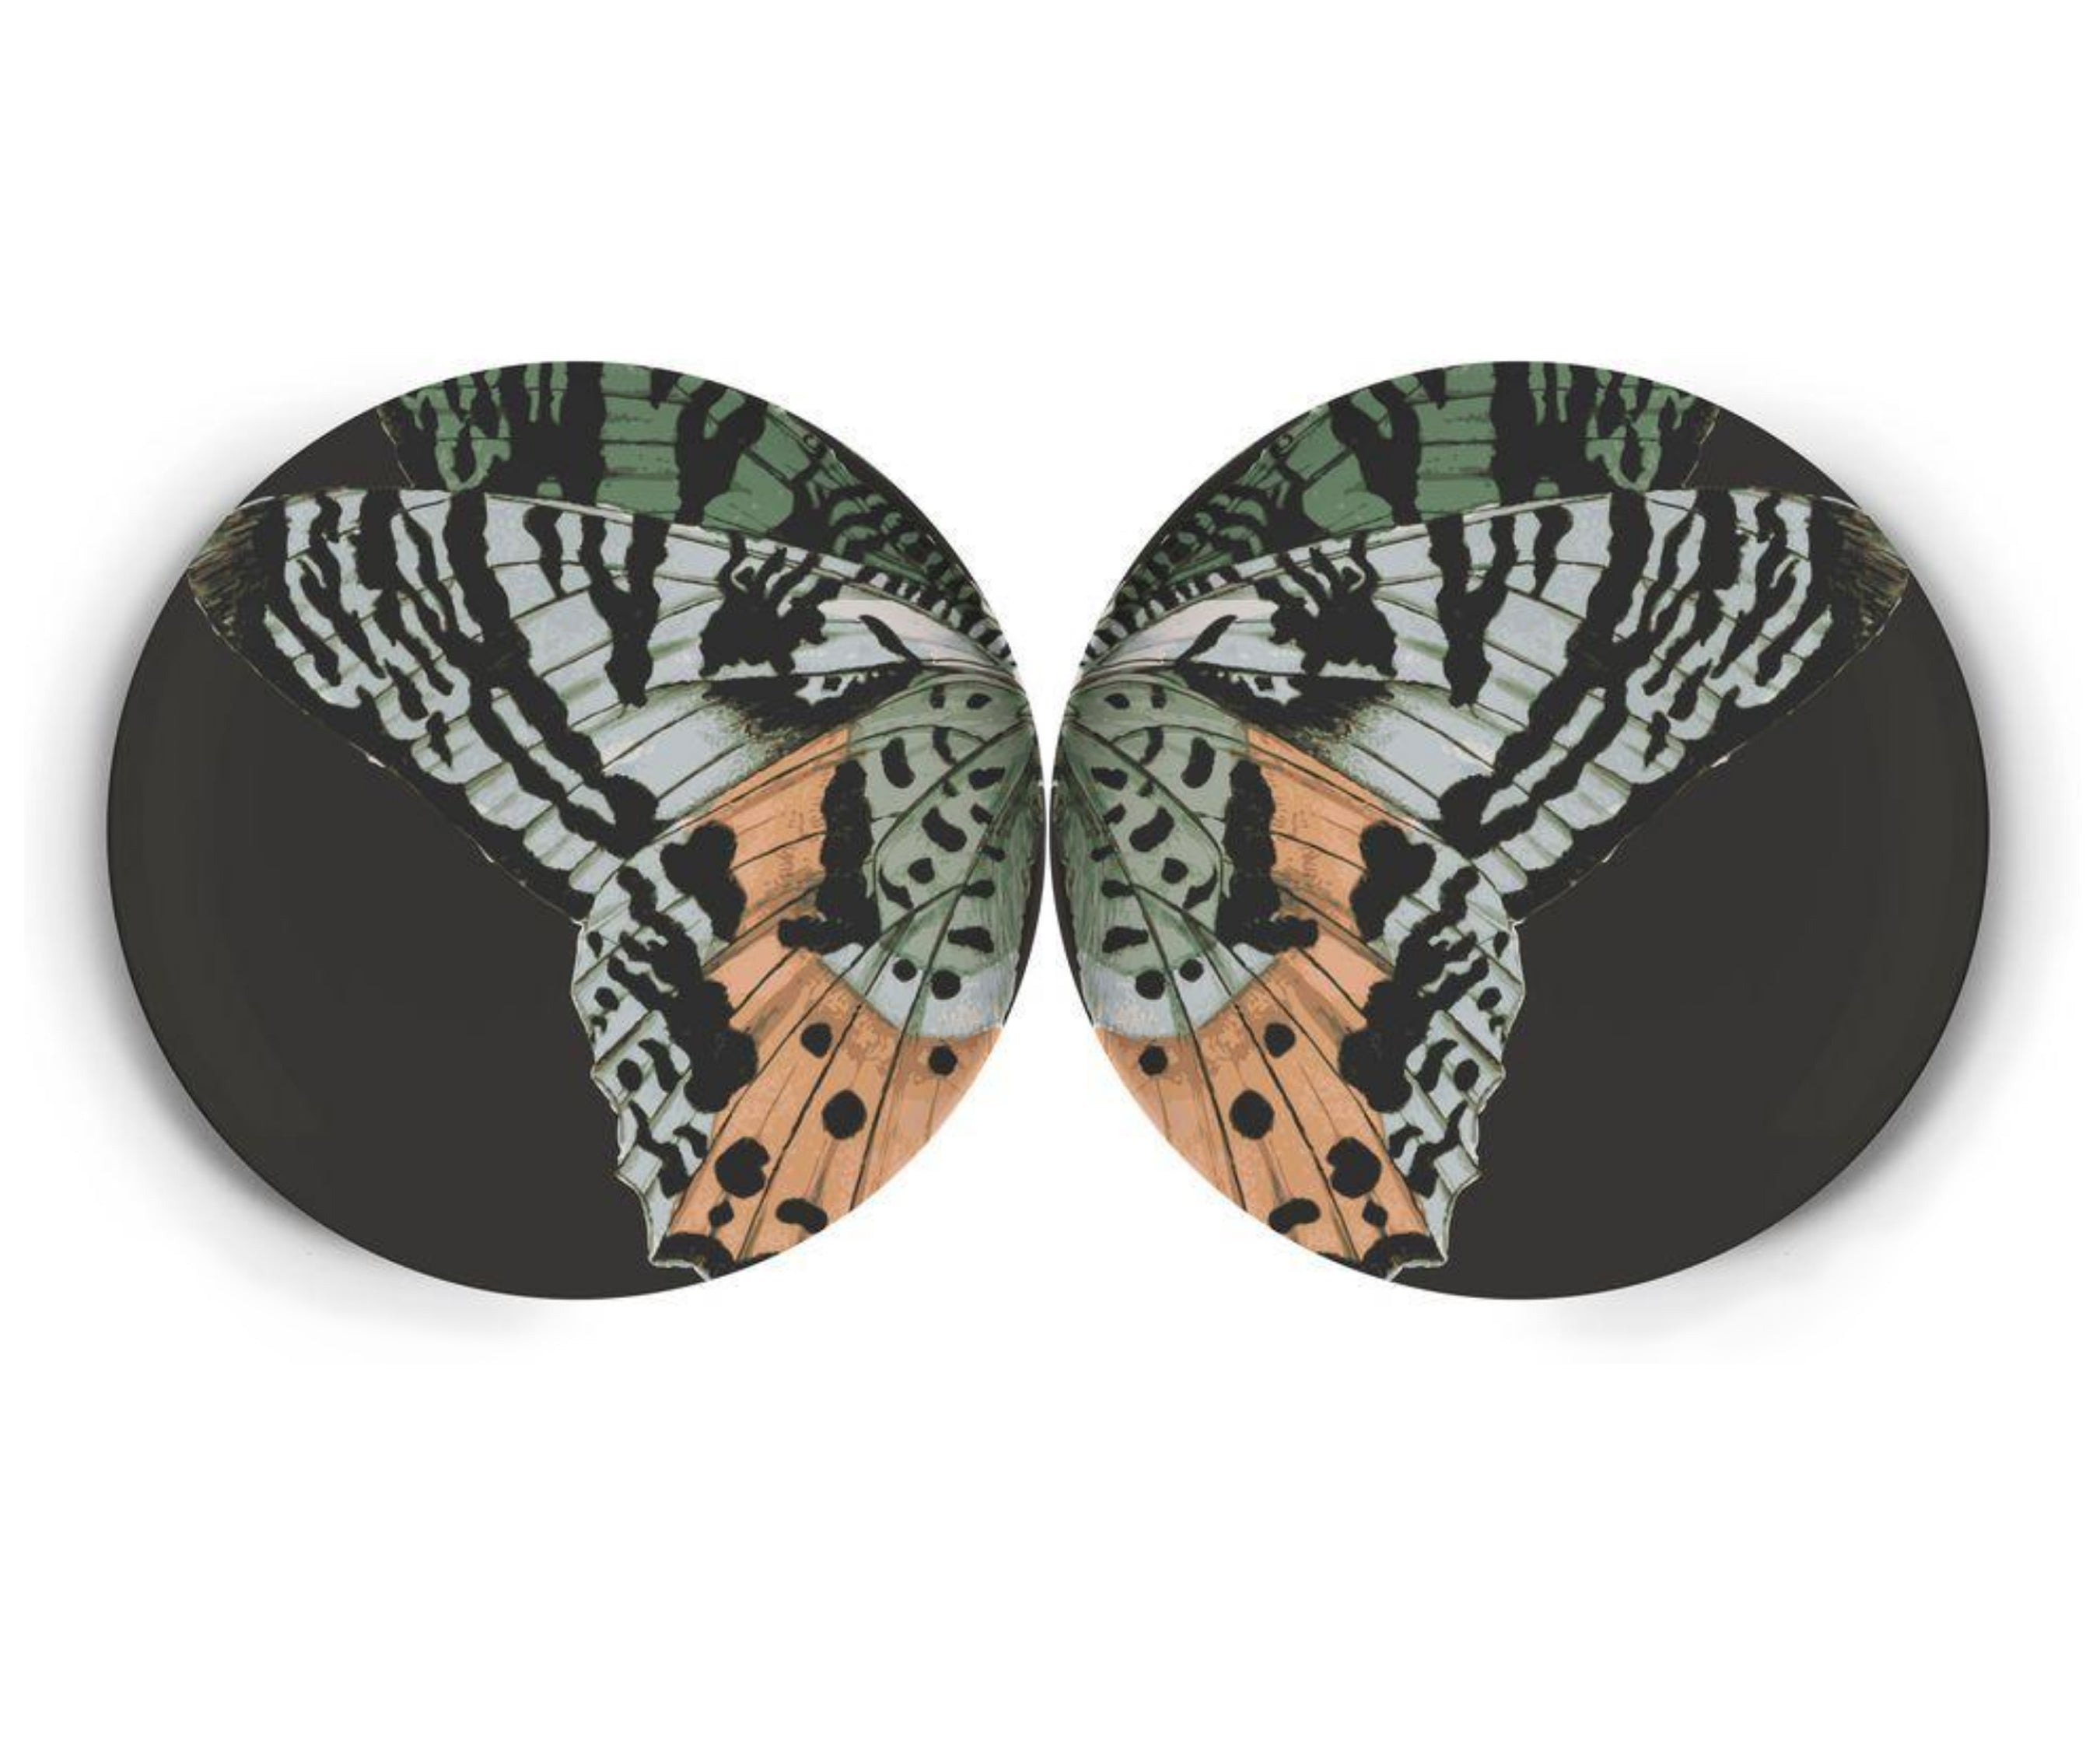 "Metamorphosis Dinner Plate, 11"" diameter"